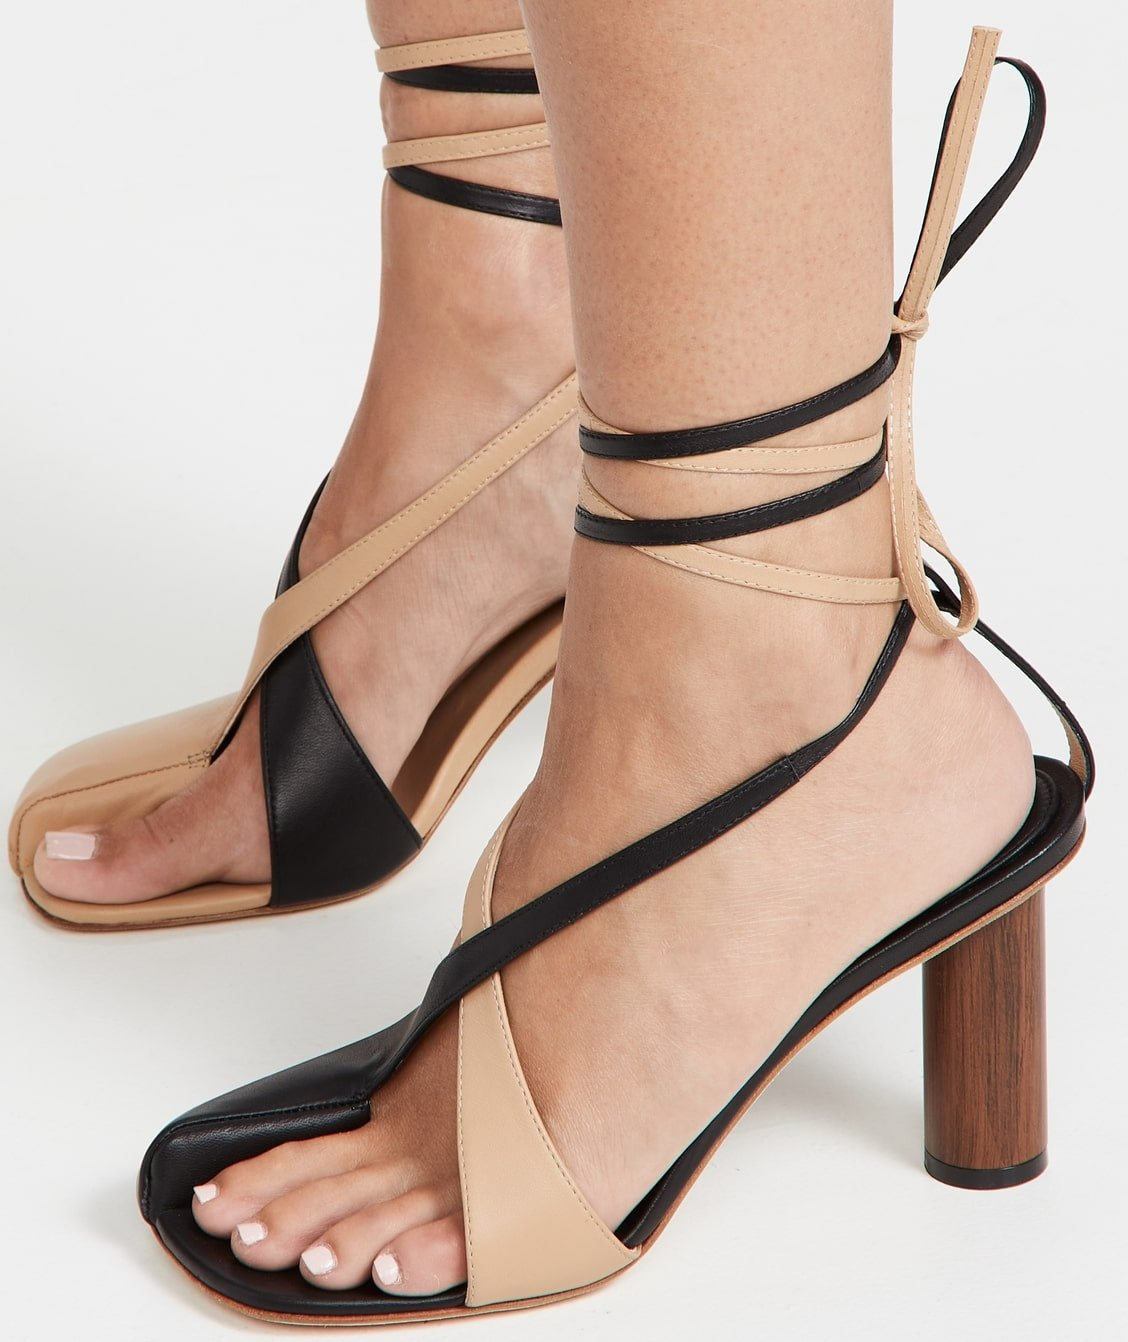 Beige and black asymmetrical open toe A.W.A.K.E MODE Geraldine wood heel sandals with wraparound ankle tie closure